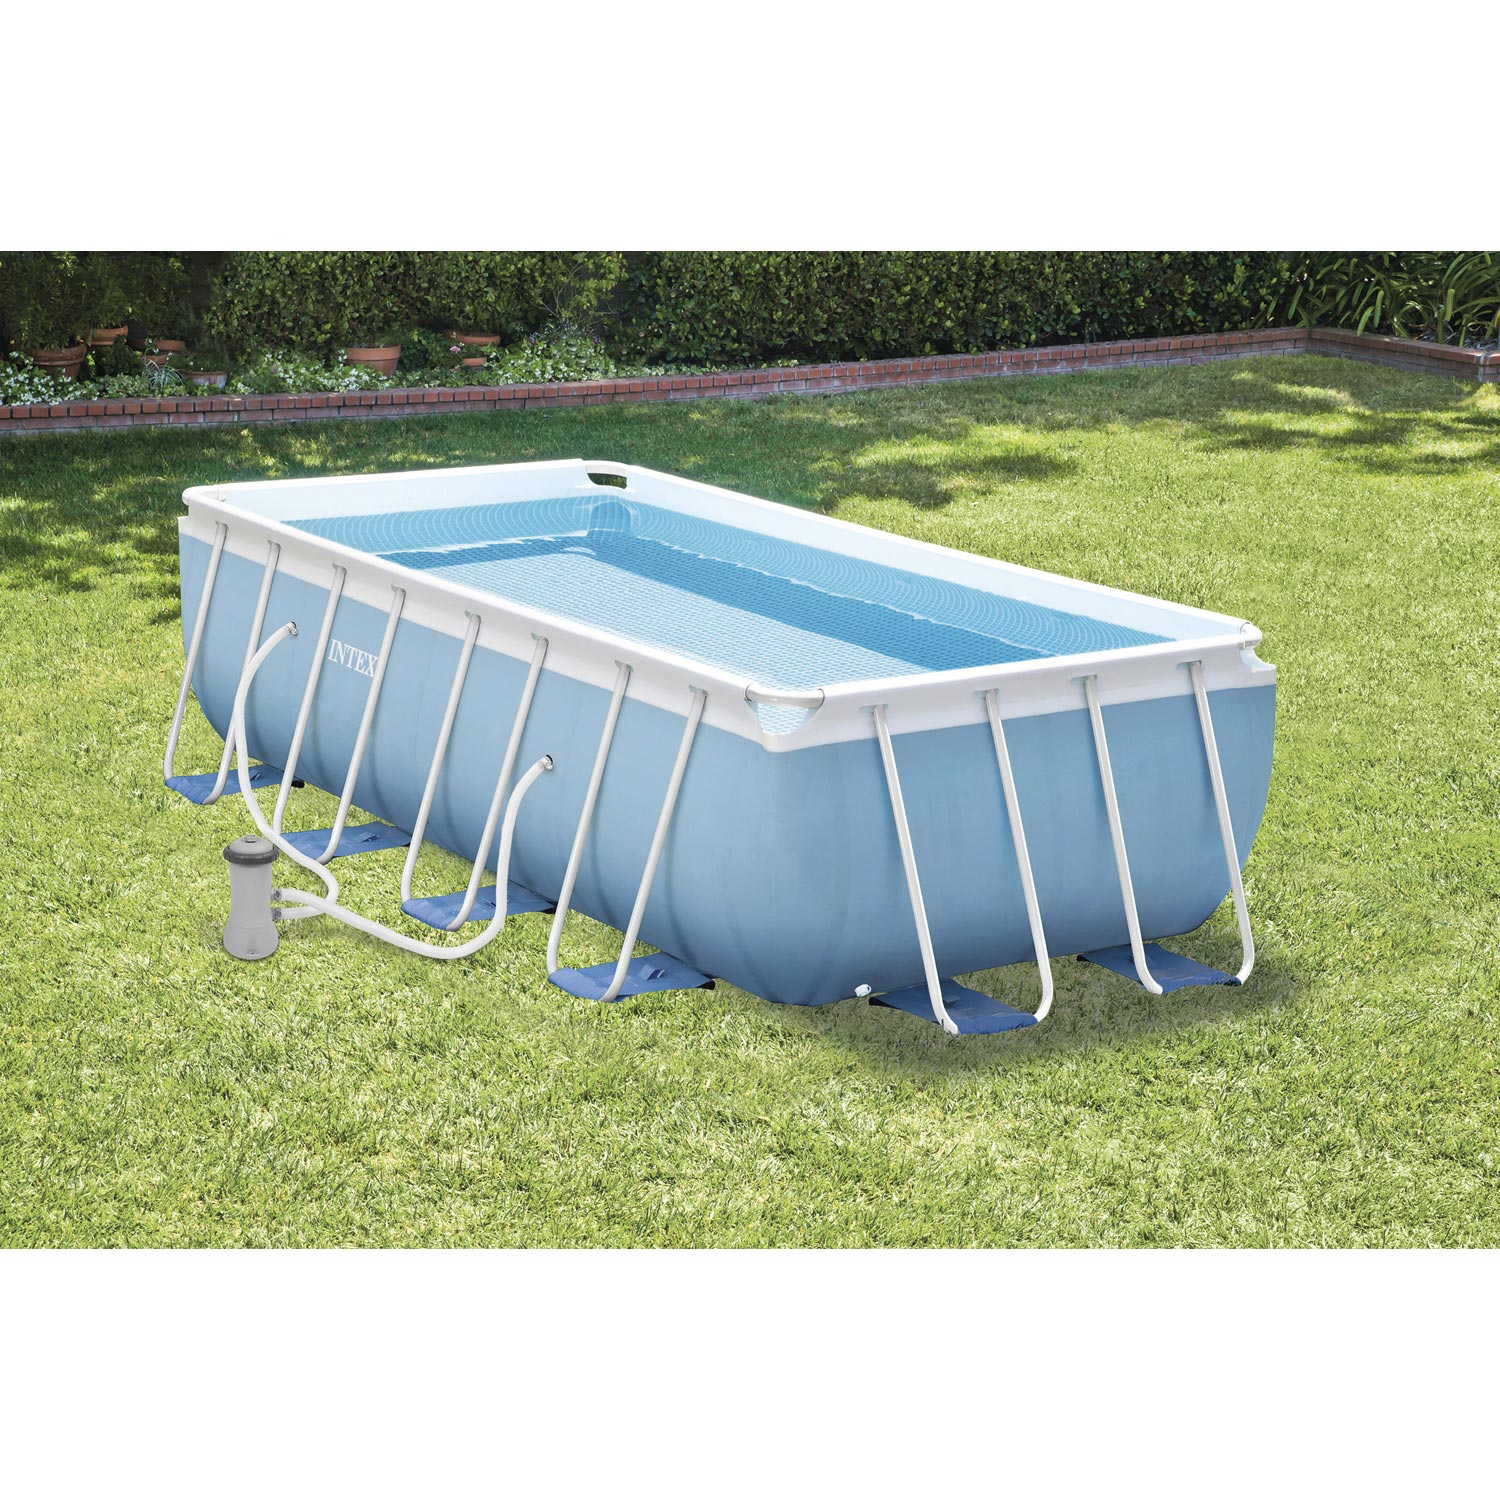 Piscine hors sol autoportante tubulaire prism frame intex for Piscine hors sol tarif